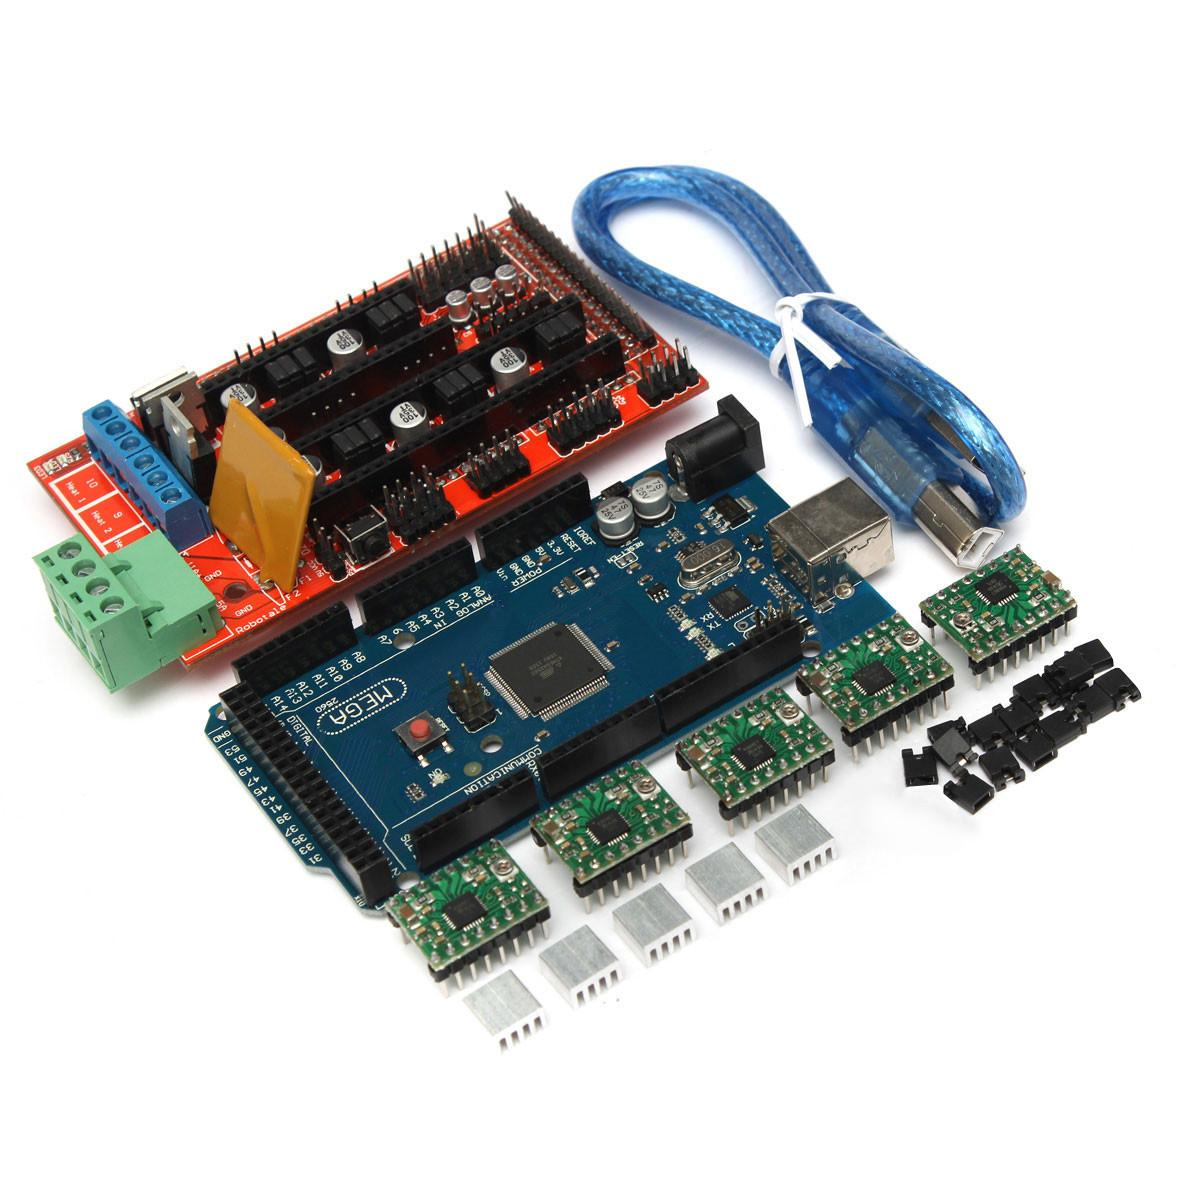 A4988 with Heat Sink USB Calbe Jumper Kit Electronic Projects MEGA2560 R3 3D Printer RAMPS 1.4 Controller